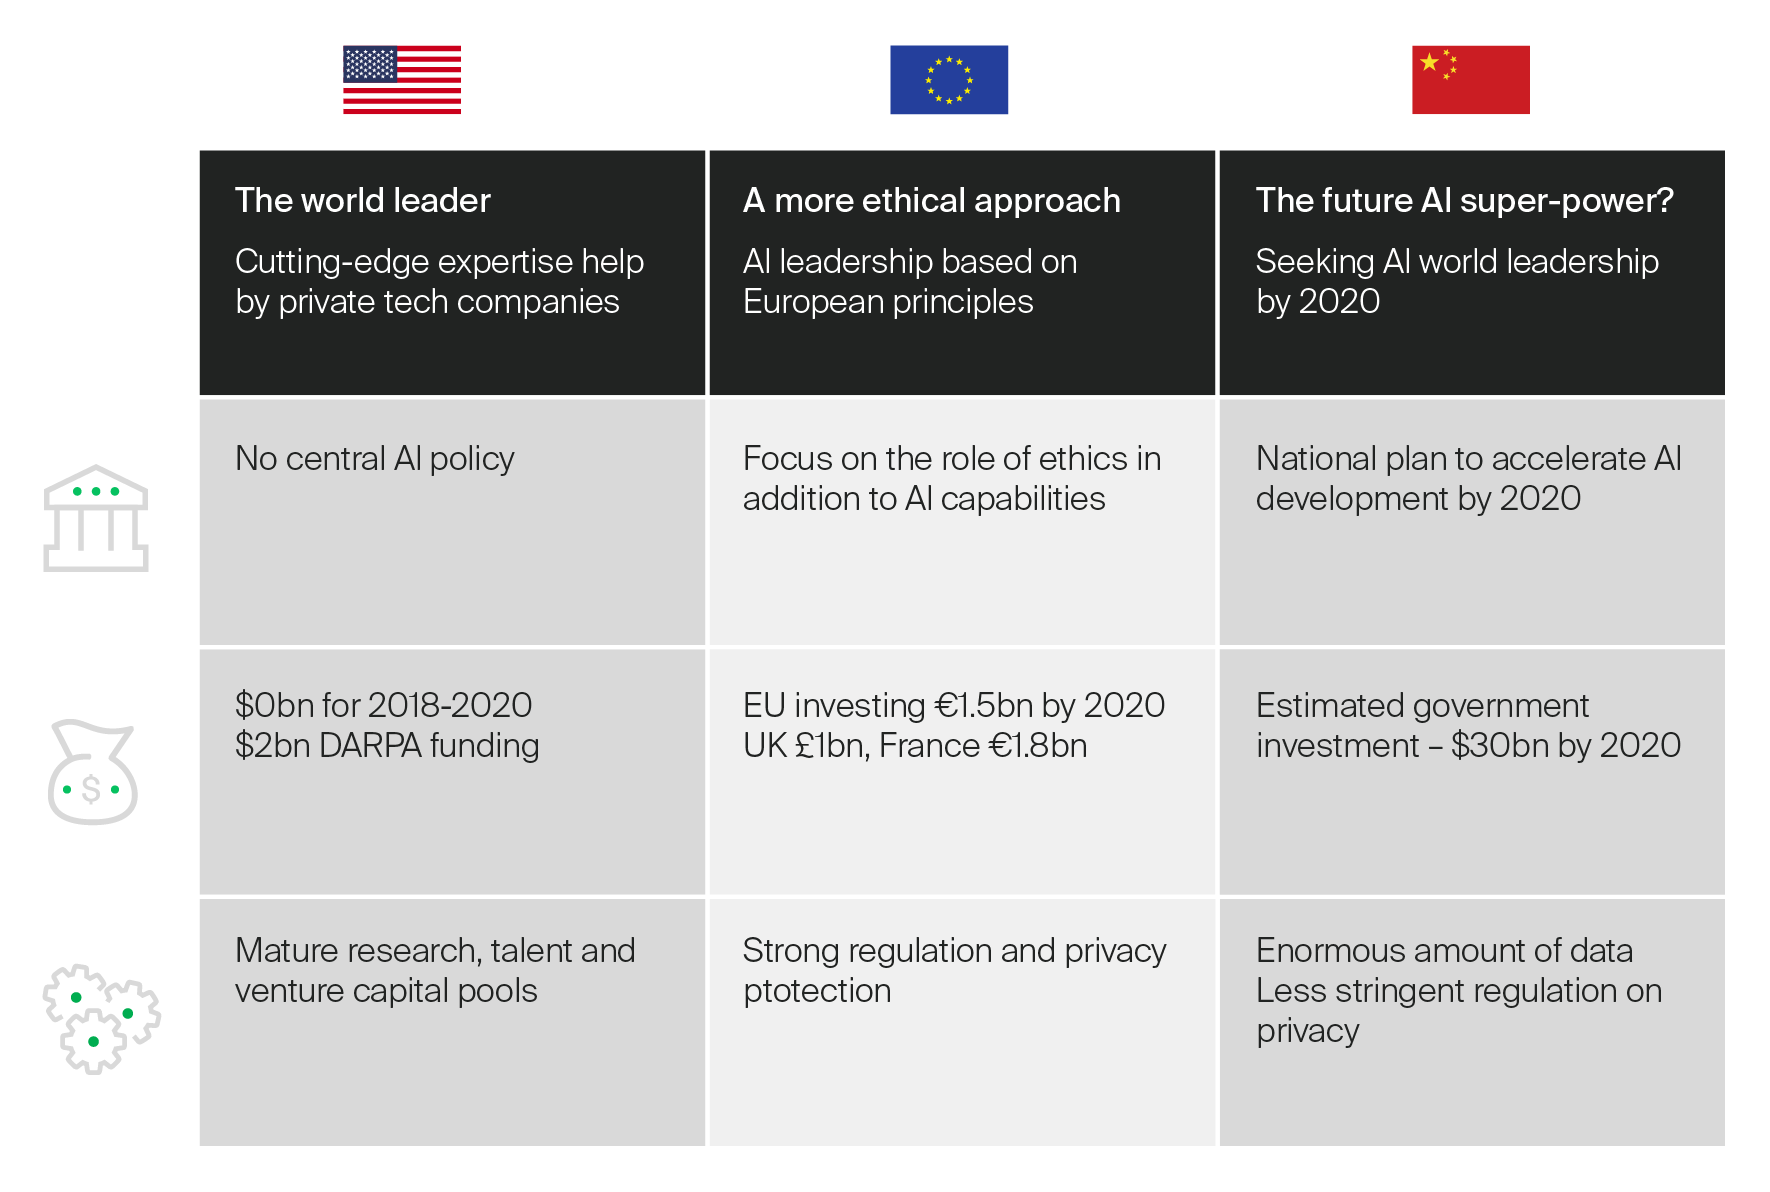 GSMA comparison of approaches to AI: USA, European Union (EU), & China | GMS breaks down the state of the mobile economy